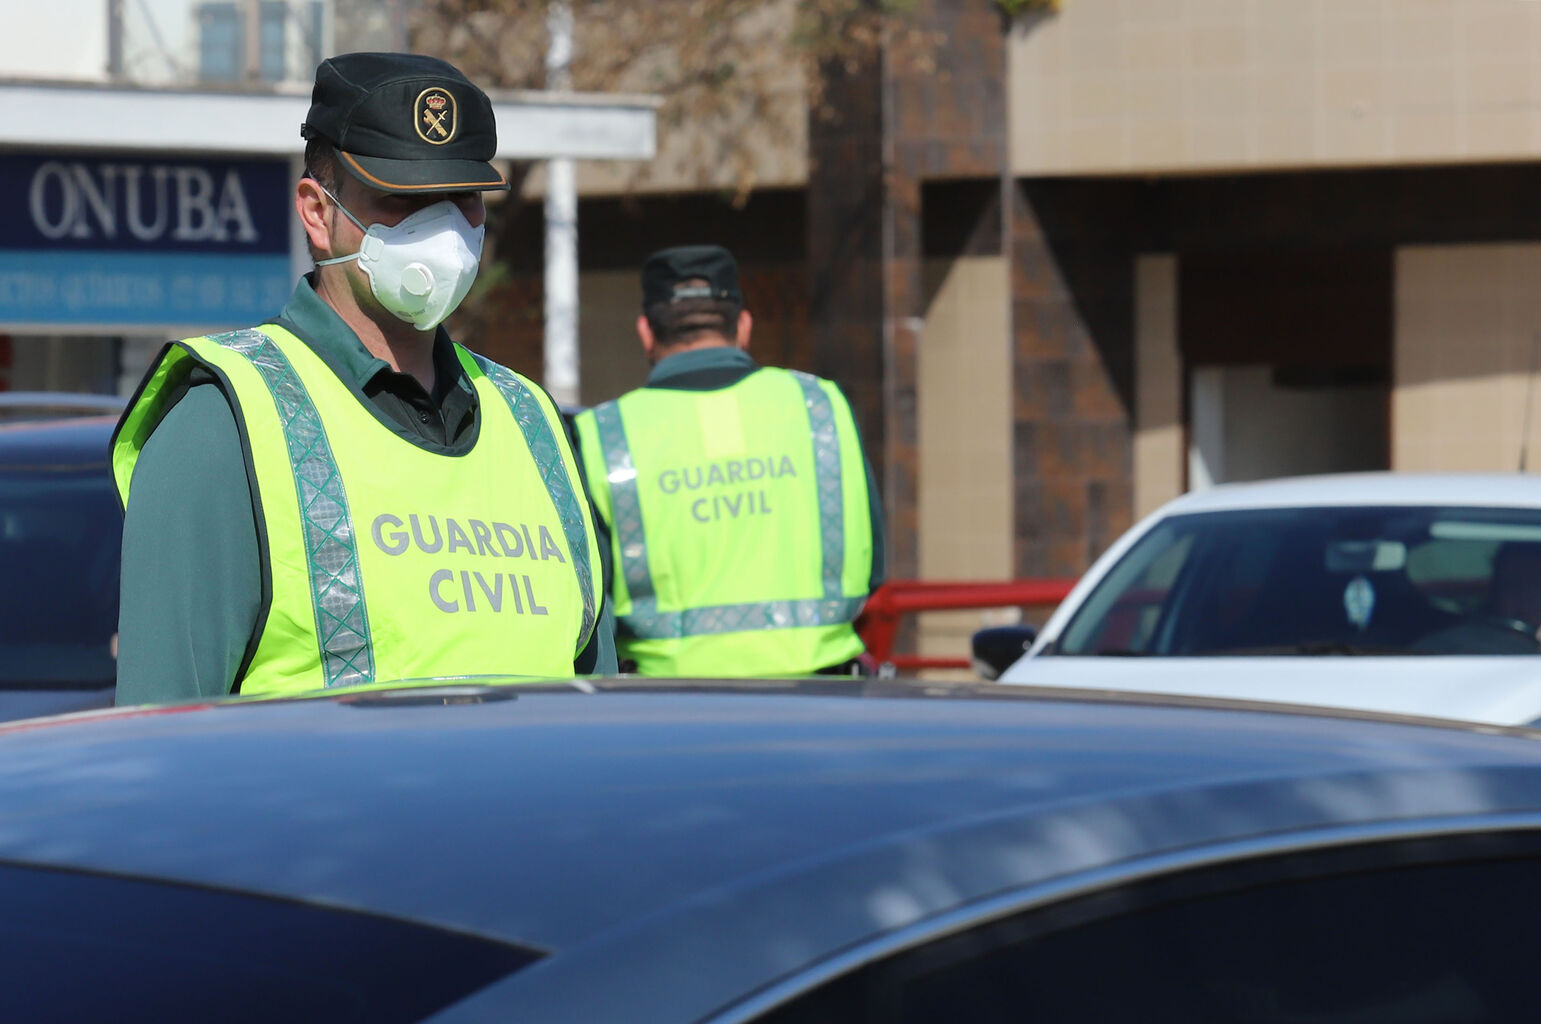 Guardia Civil mascarilla proteccion vehiculos